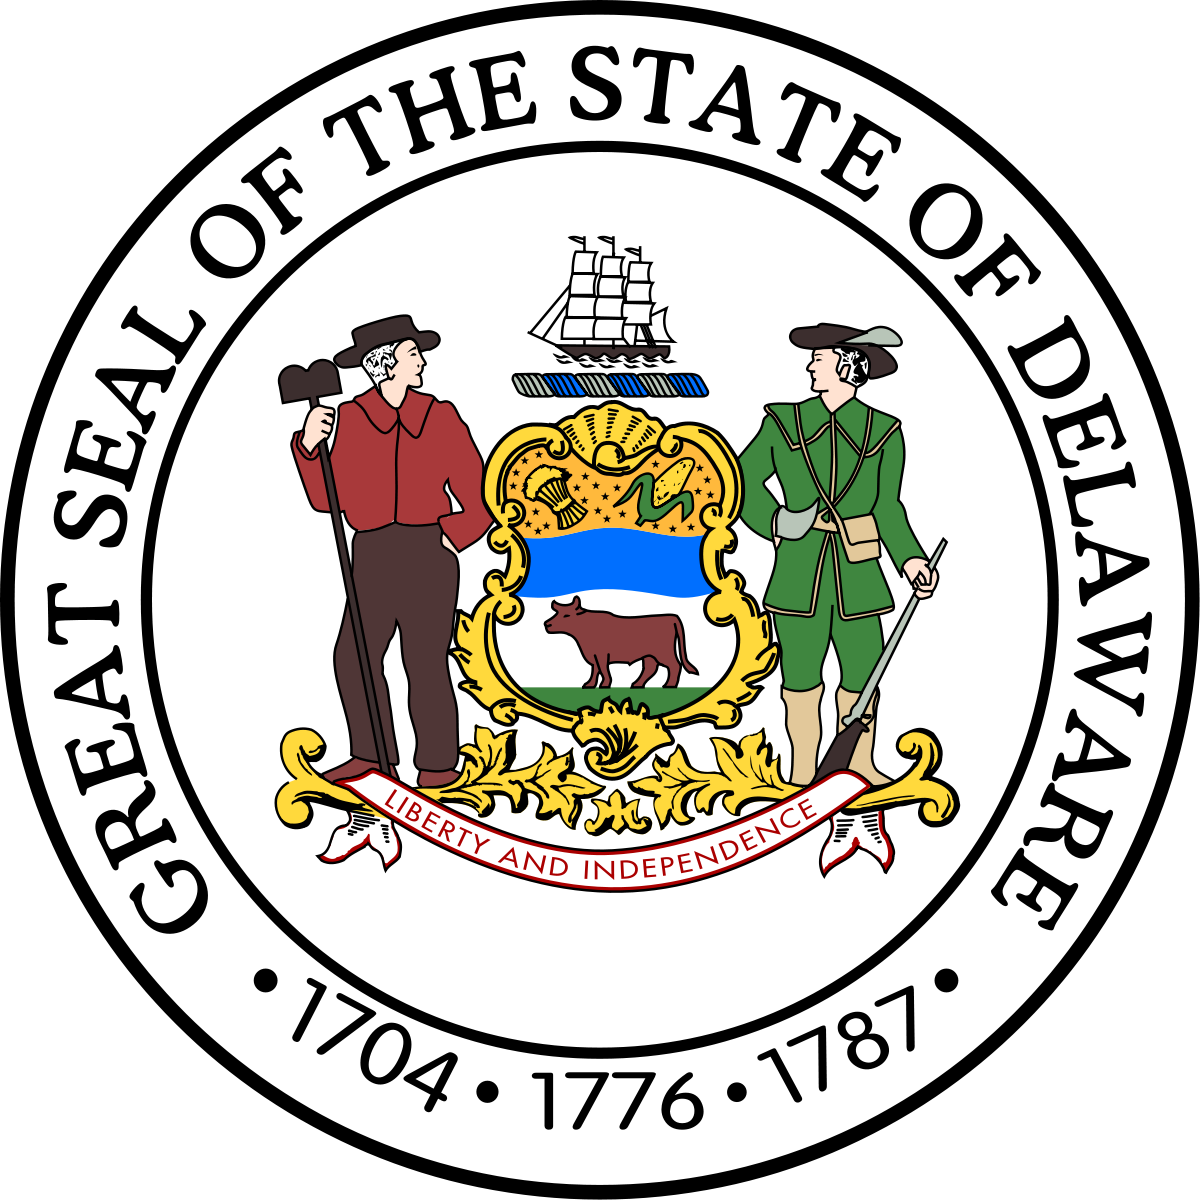 The State of Delaware